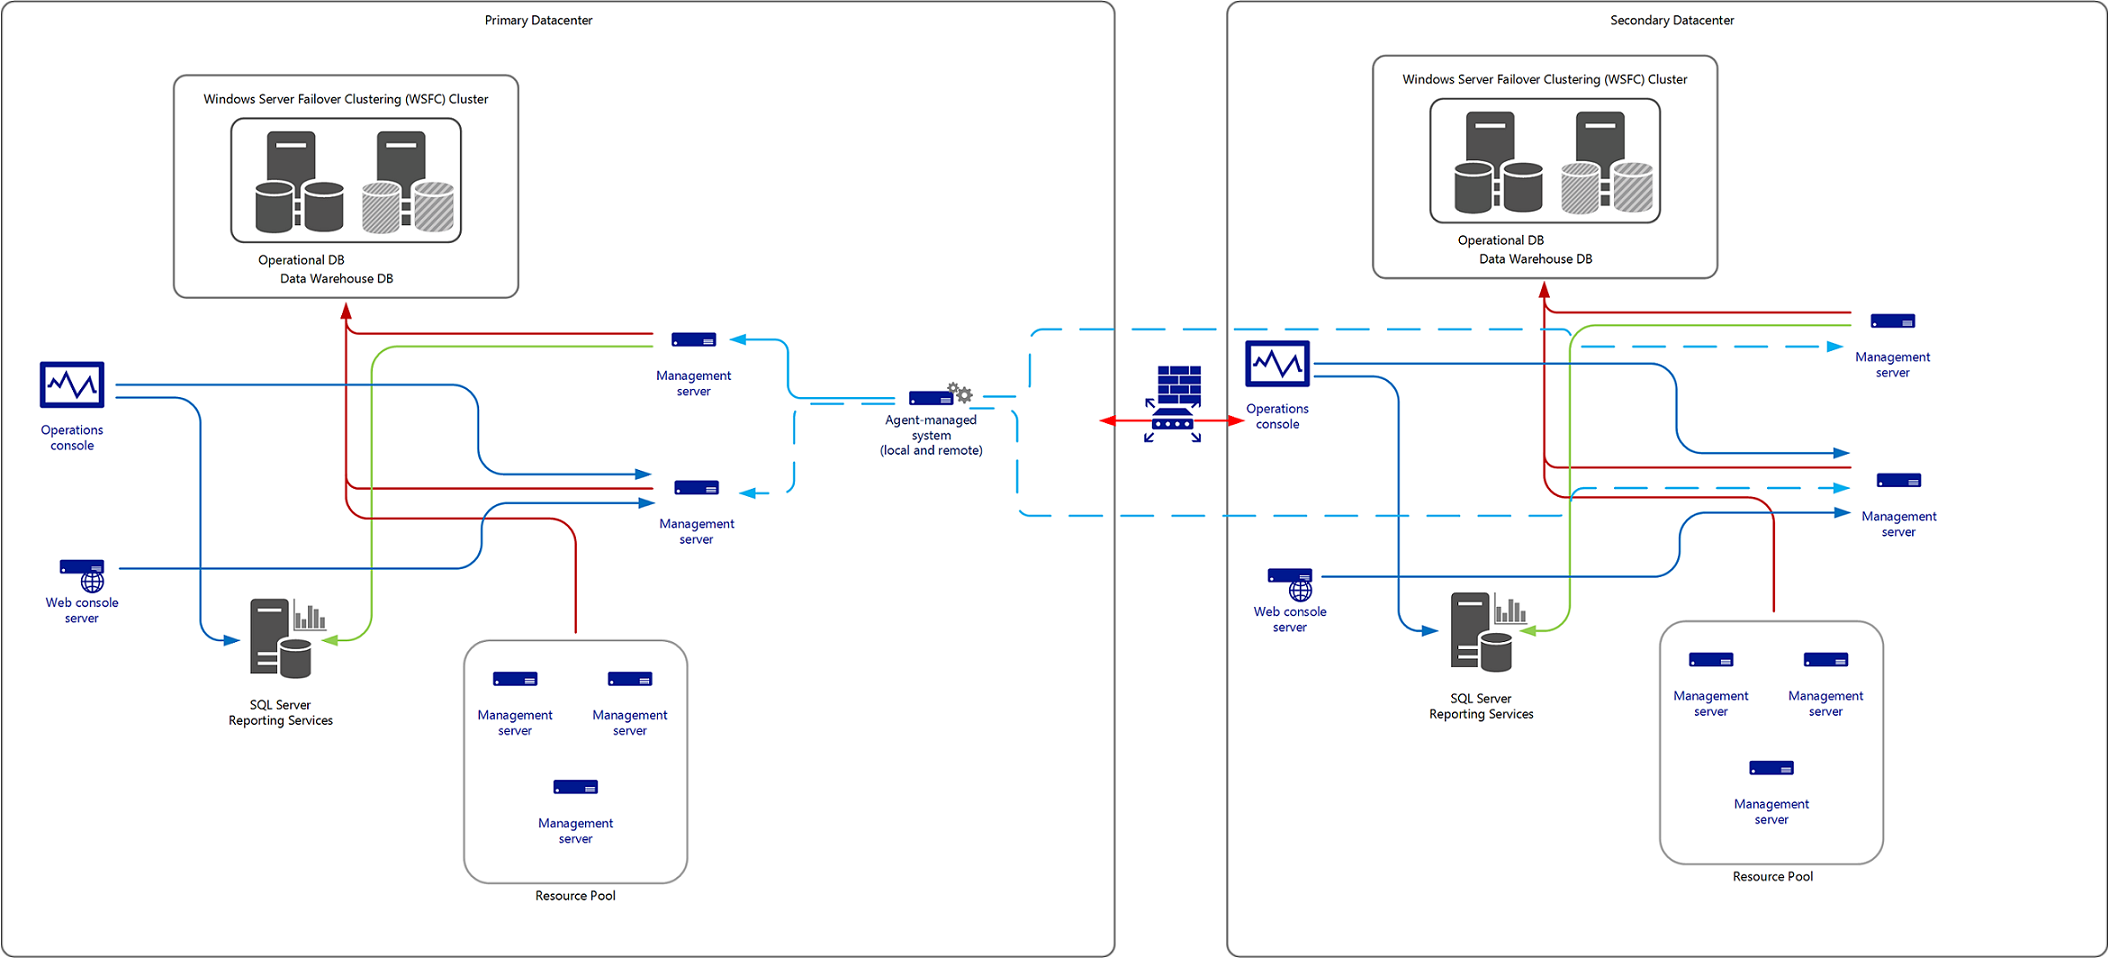 Designing for High Availability and Disaster Recovery | Microsoft Docs